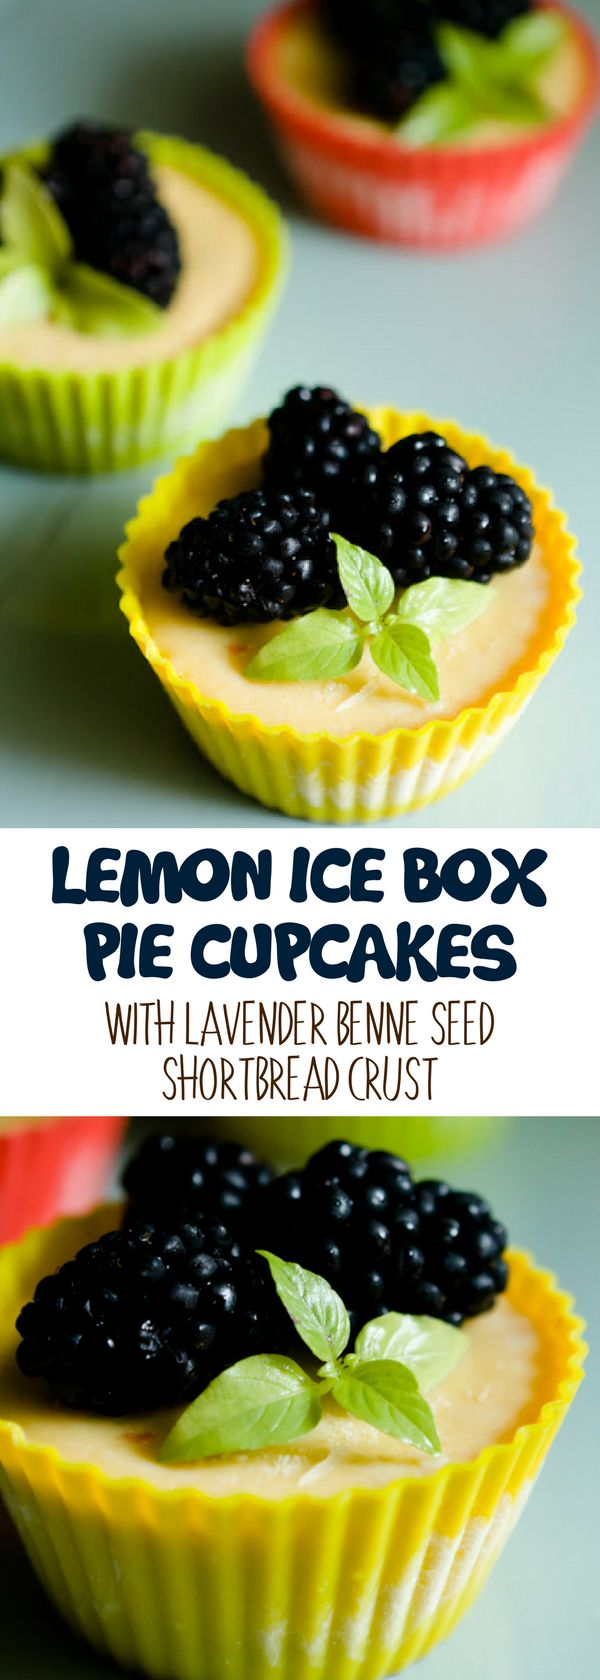 Lemon ice box pie is the lemon version of key lime pie. It's a delicious cupcake better served frozen. For more simple baking desserts recipes and homemade sweet treats, check us out at #cupcakeproject. #desserts #yummydesserts #recipeoftheday #sweettooth